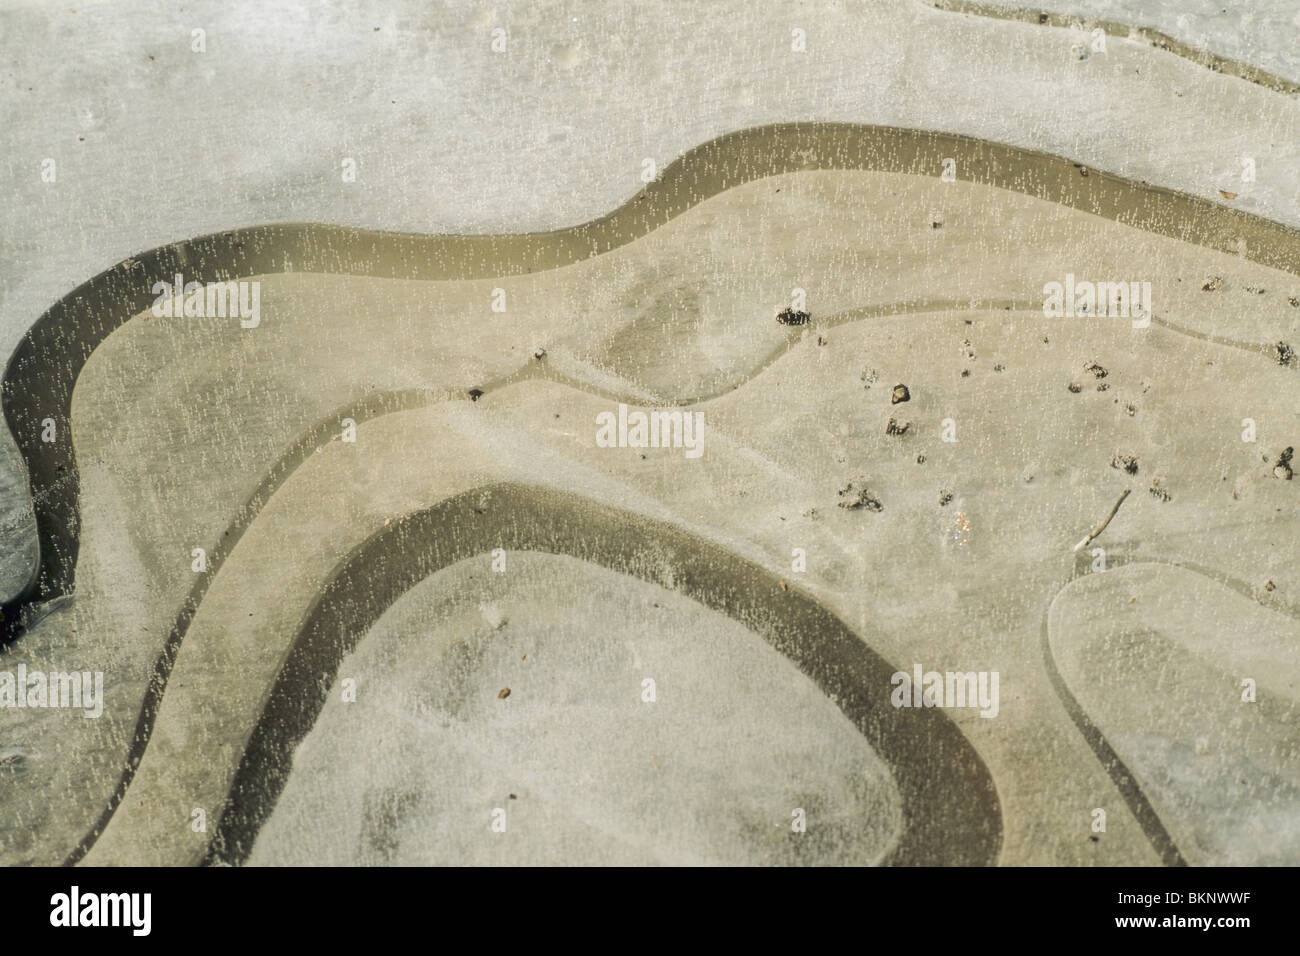 Movements of mud captured in ice - Stock Image